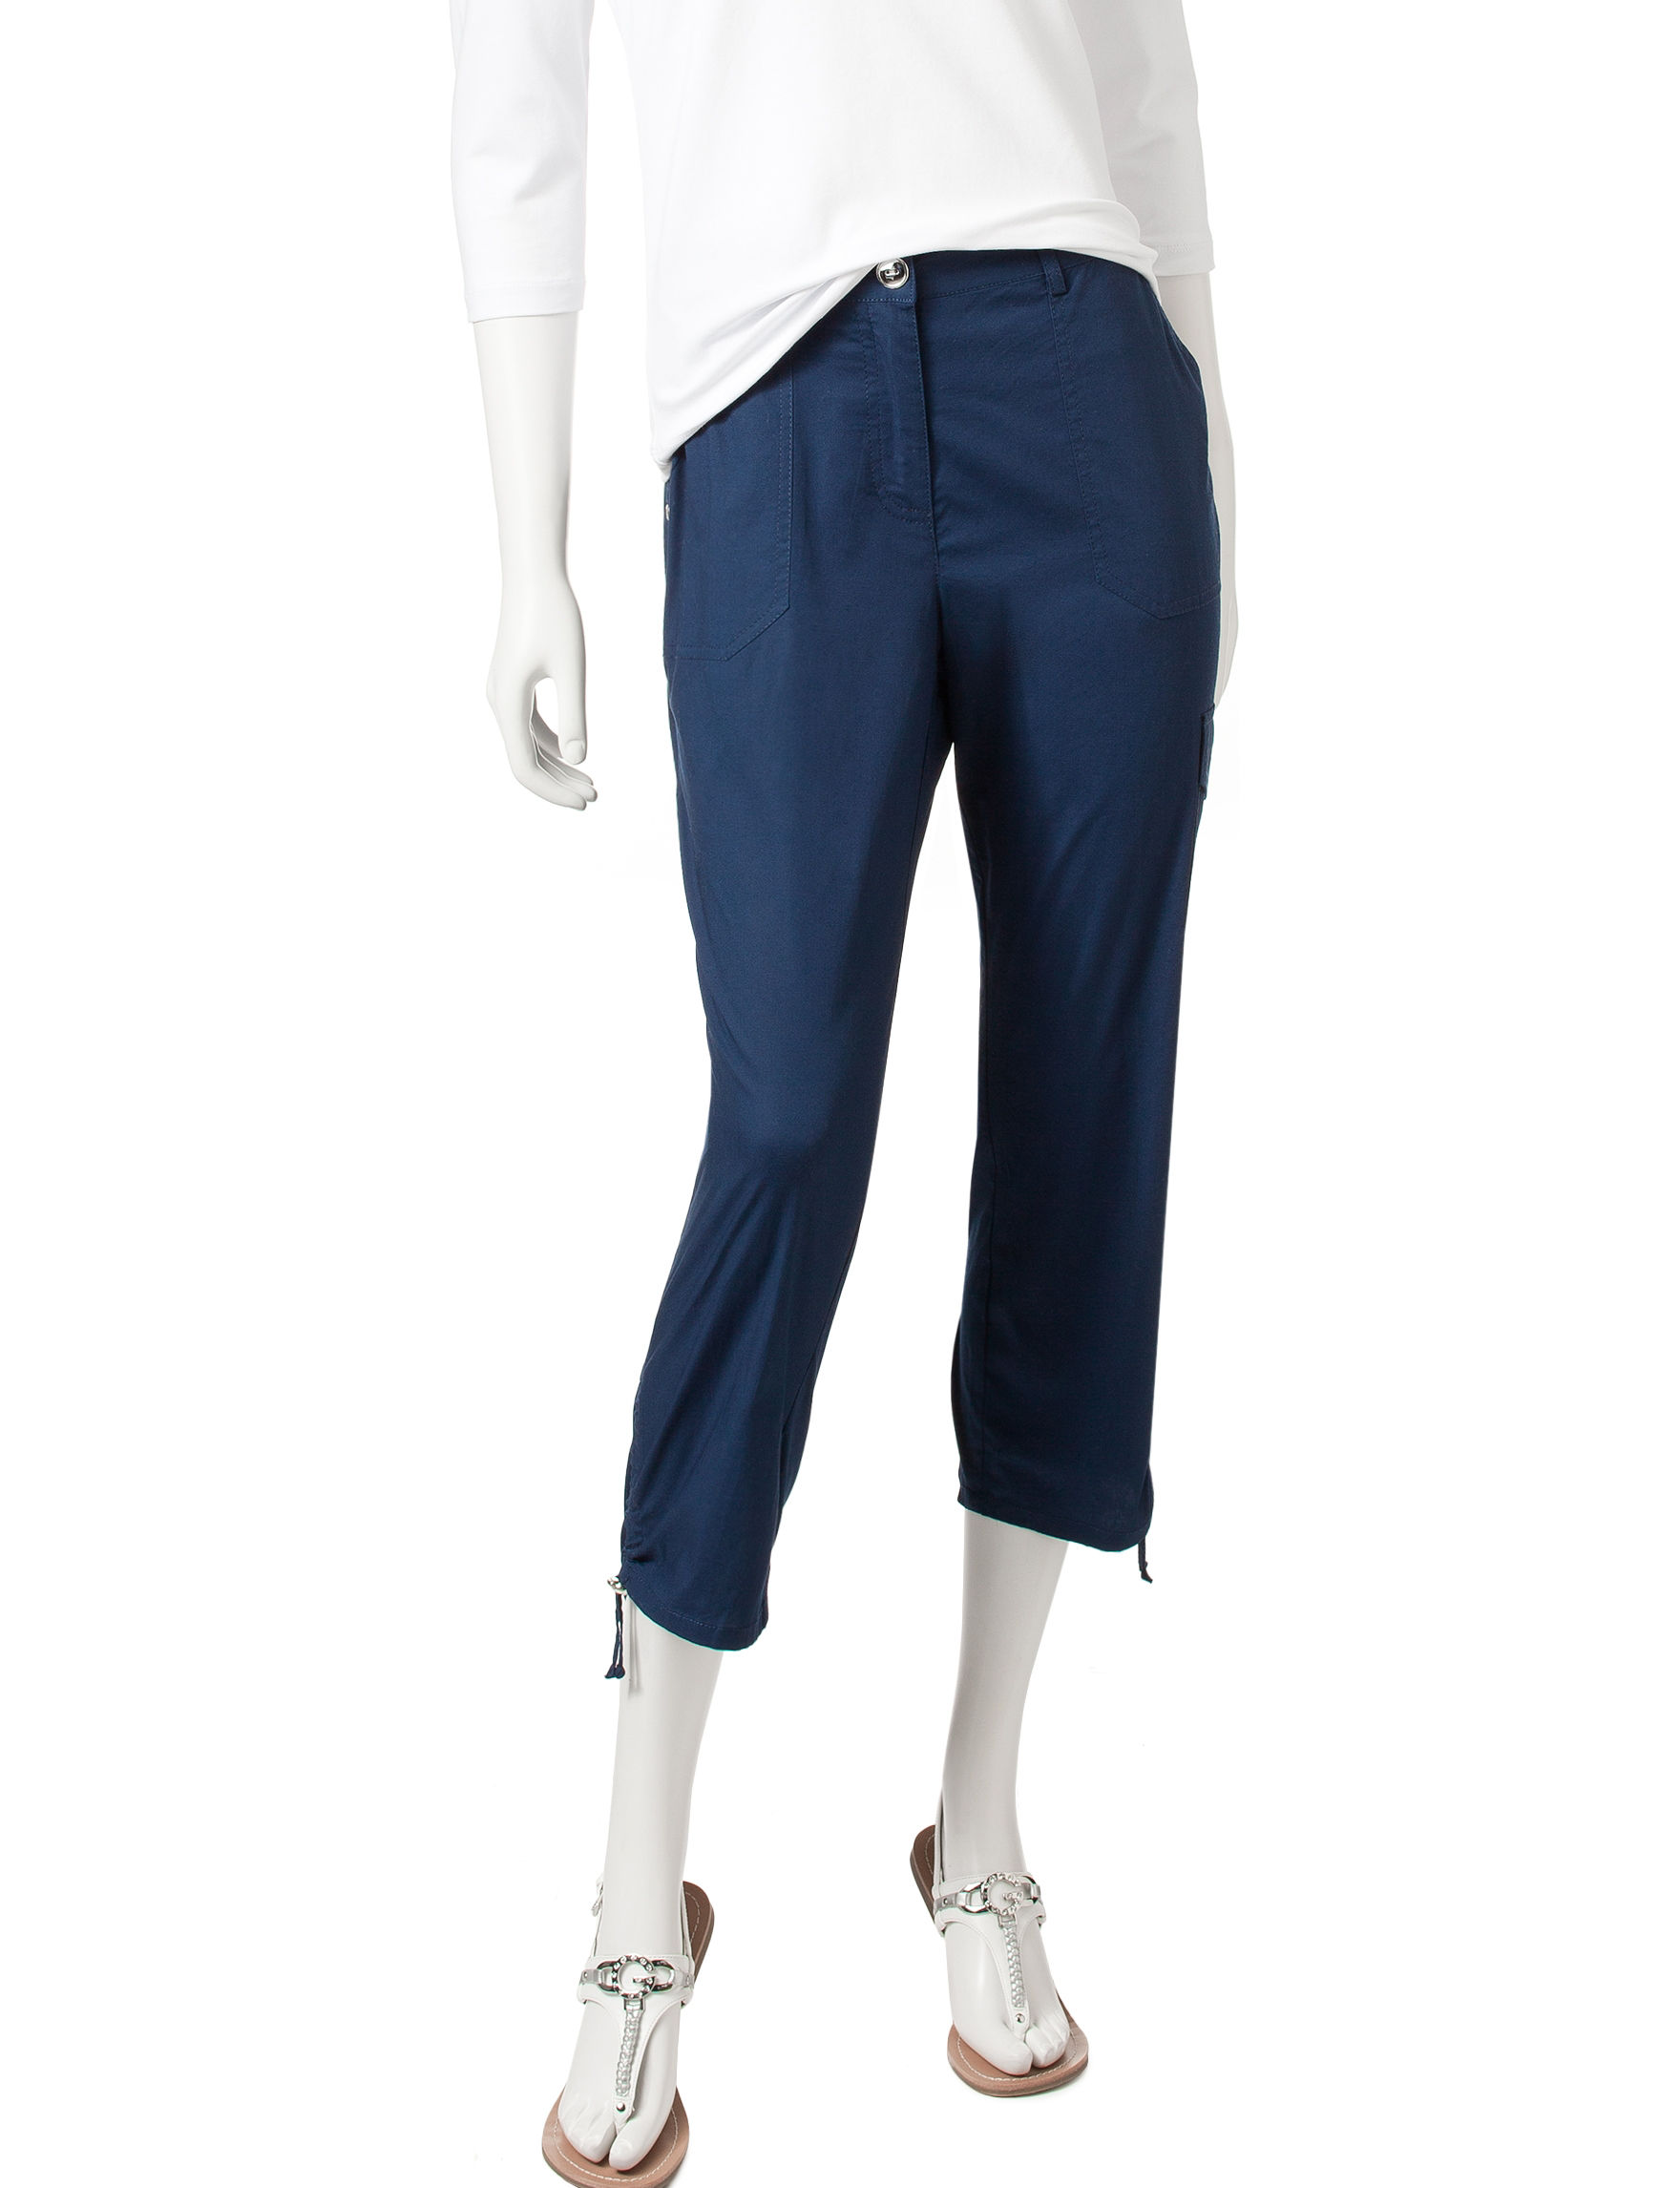 Hearts of Palm Navy Capris & Crops